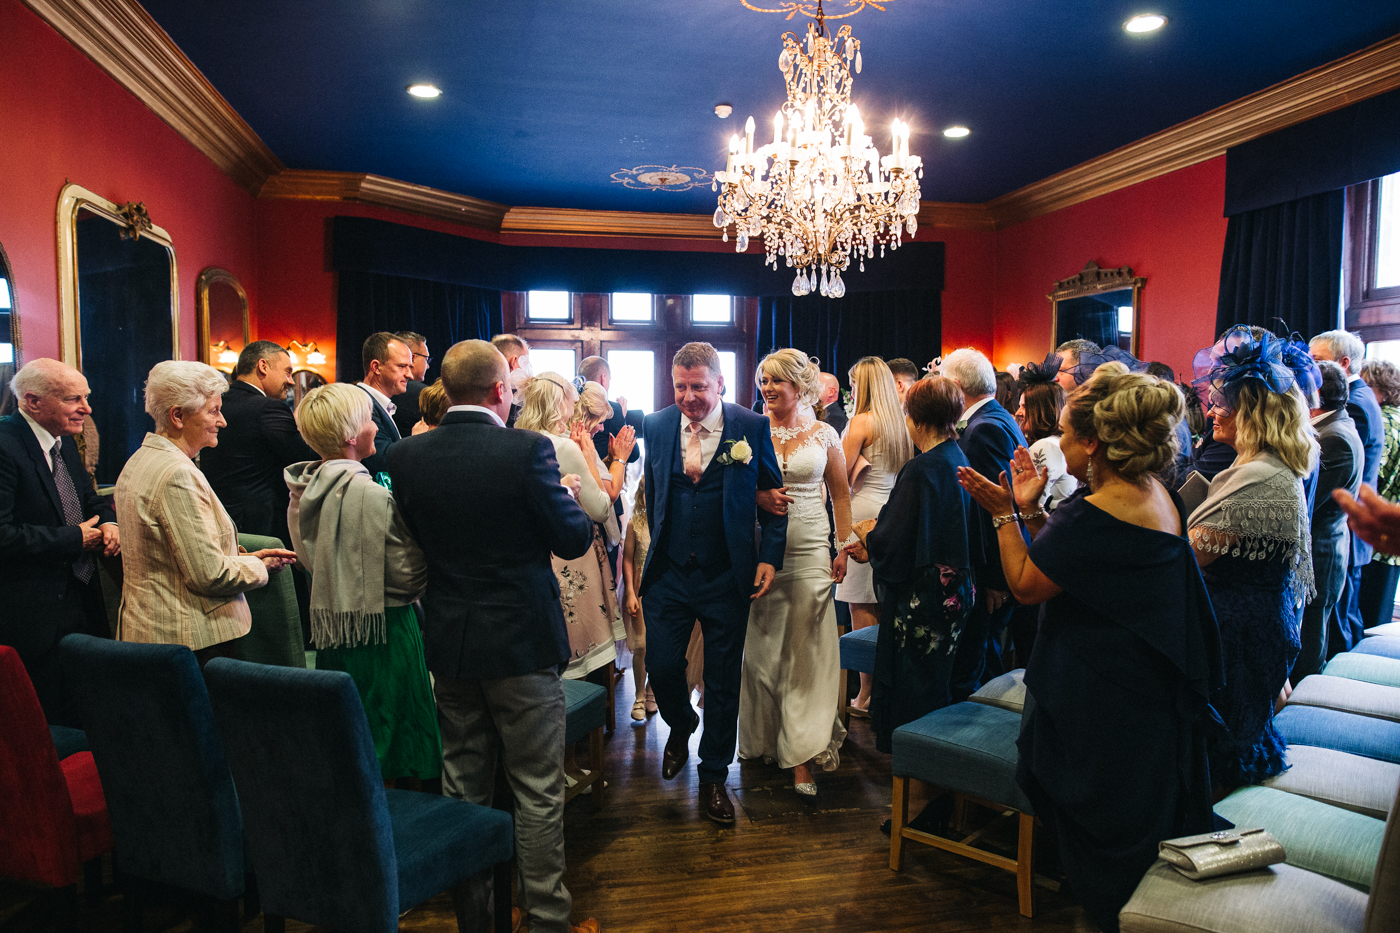 the bride and groom walk back up the aisle after their ceremony. cleveland tontine wedding teesside north yorkshire - relaxed and creative wedding photographer